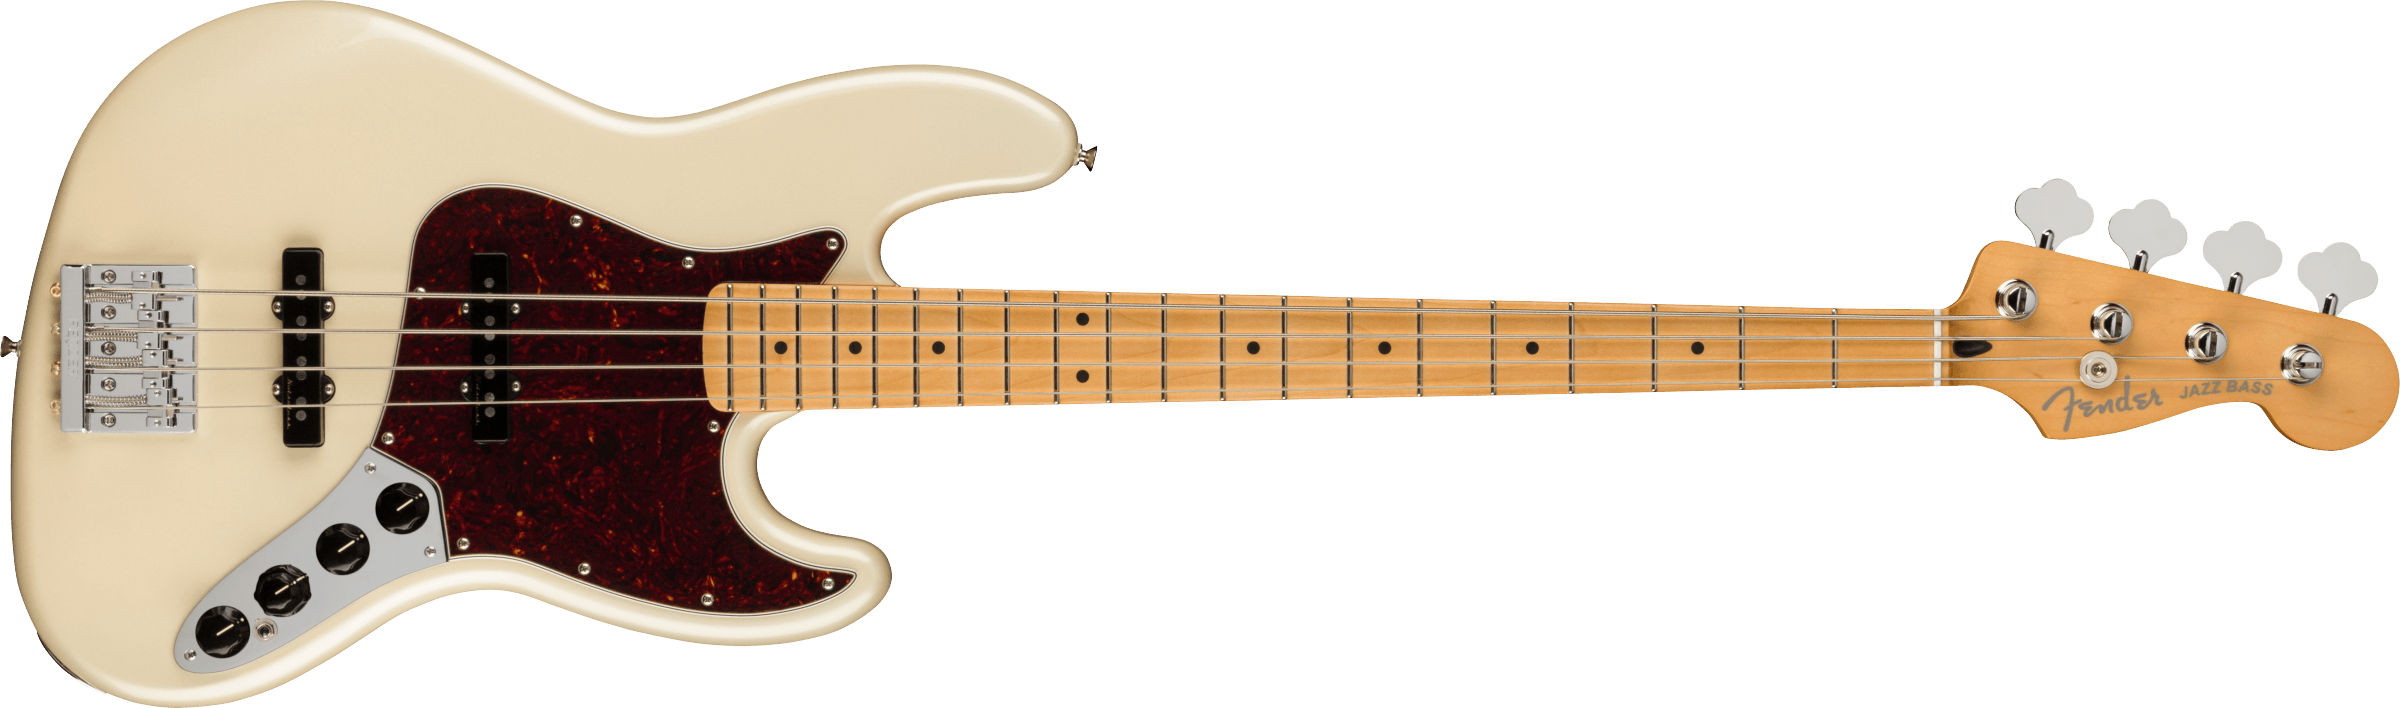 Fender Player Plus Jazz Bass, Maple Fingerboard, Olympic Pearl